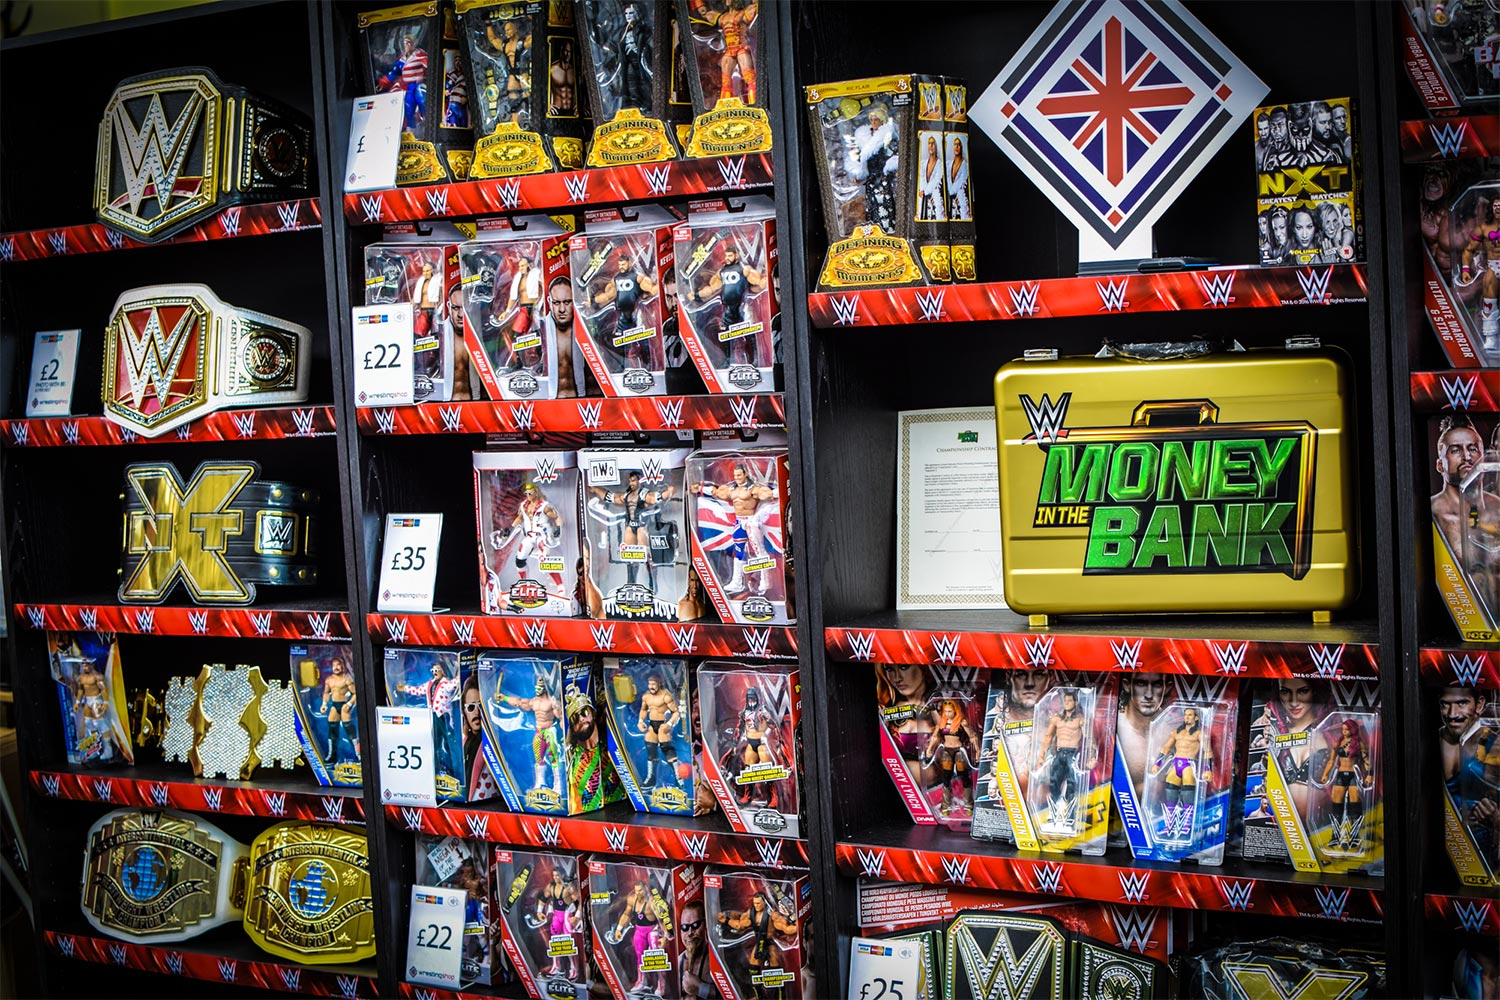 Wrestling Shop display